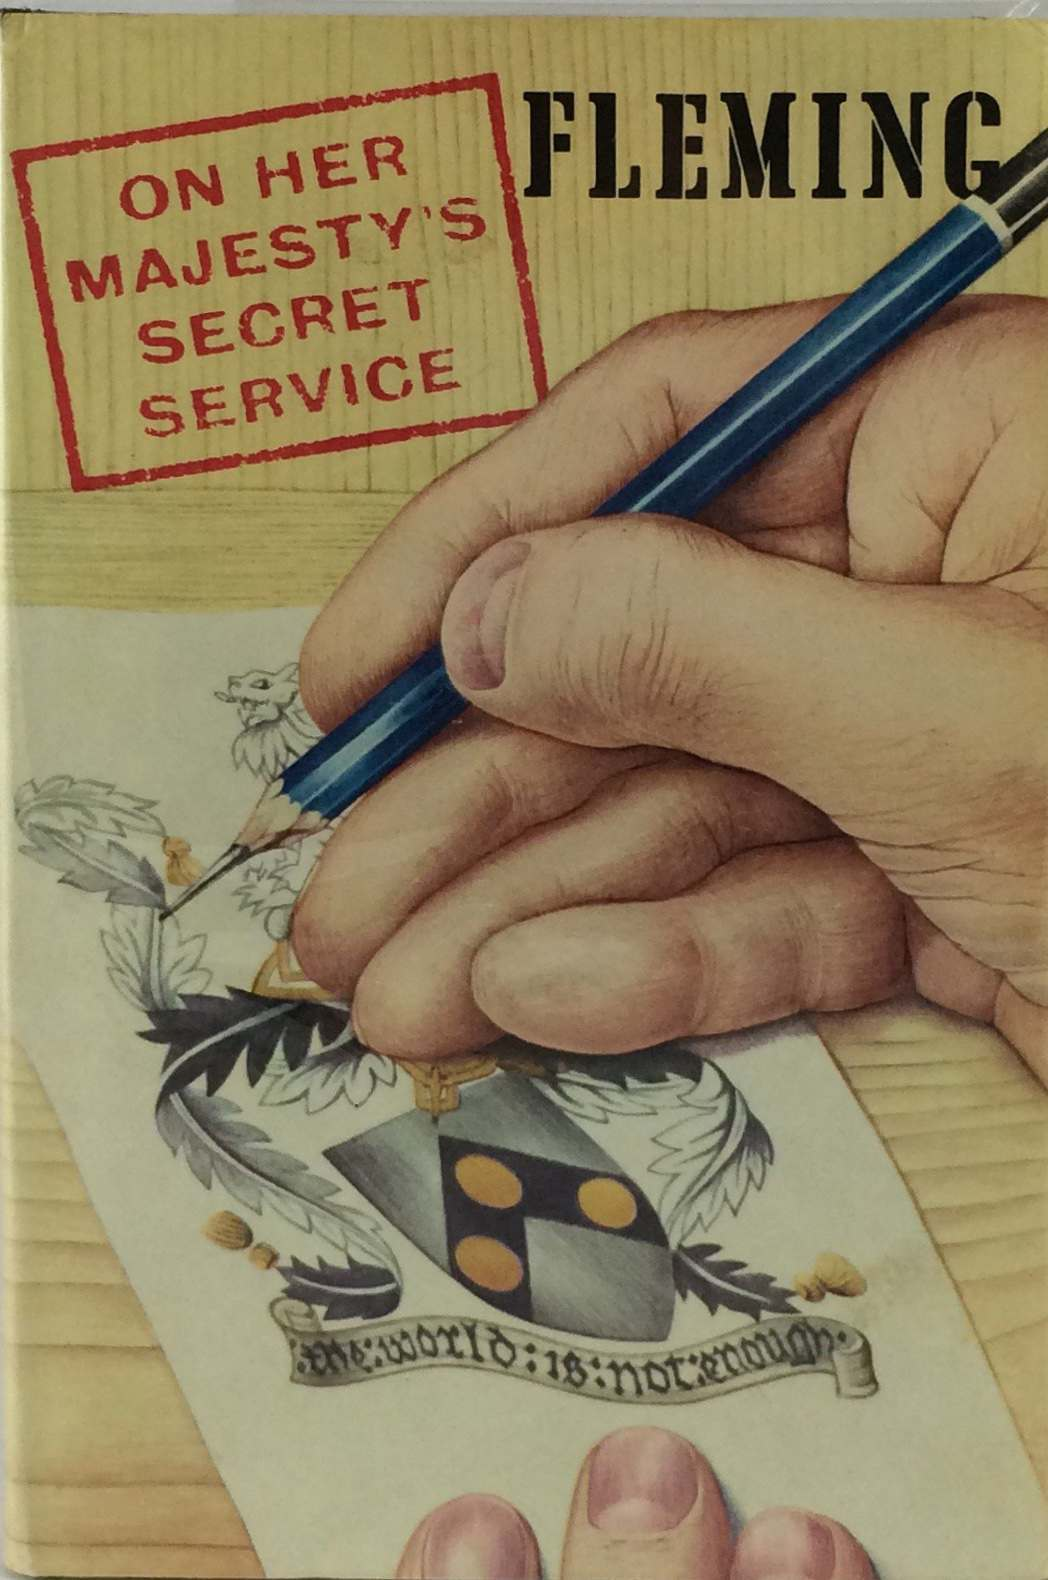 """The Jonathan Cape first edition cover of On Her Majesty's Secret Service, published in 1963. It's the second book in what is known as the """"Blofeld trilogy"""", which begins with Thunderball and concluded with You Only Live Twice."""